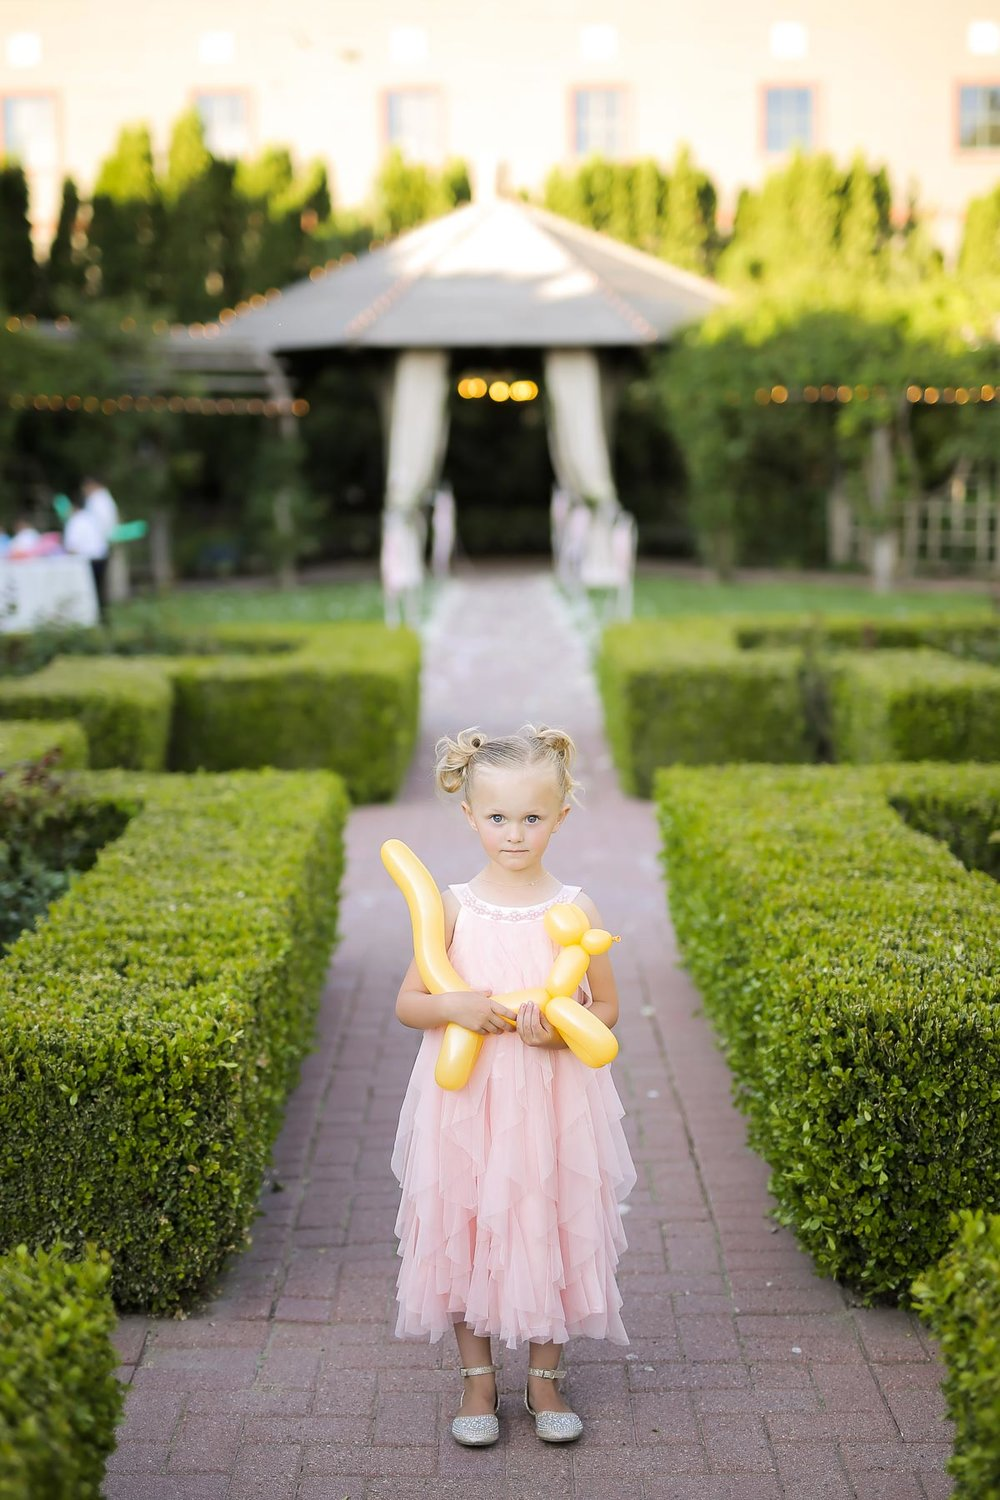 flower-girl-utah-weddings-pepper_nix_photography-74.jpg